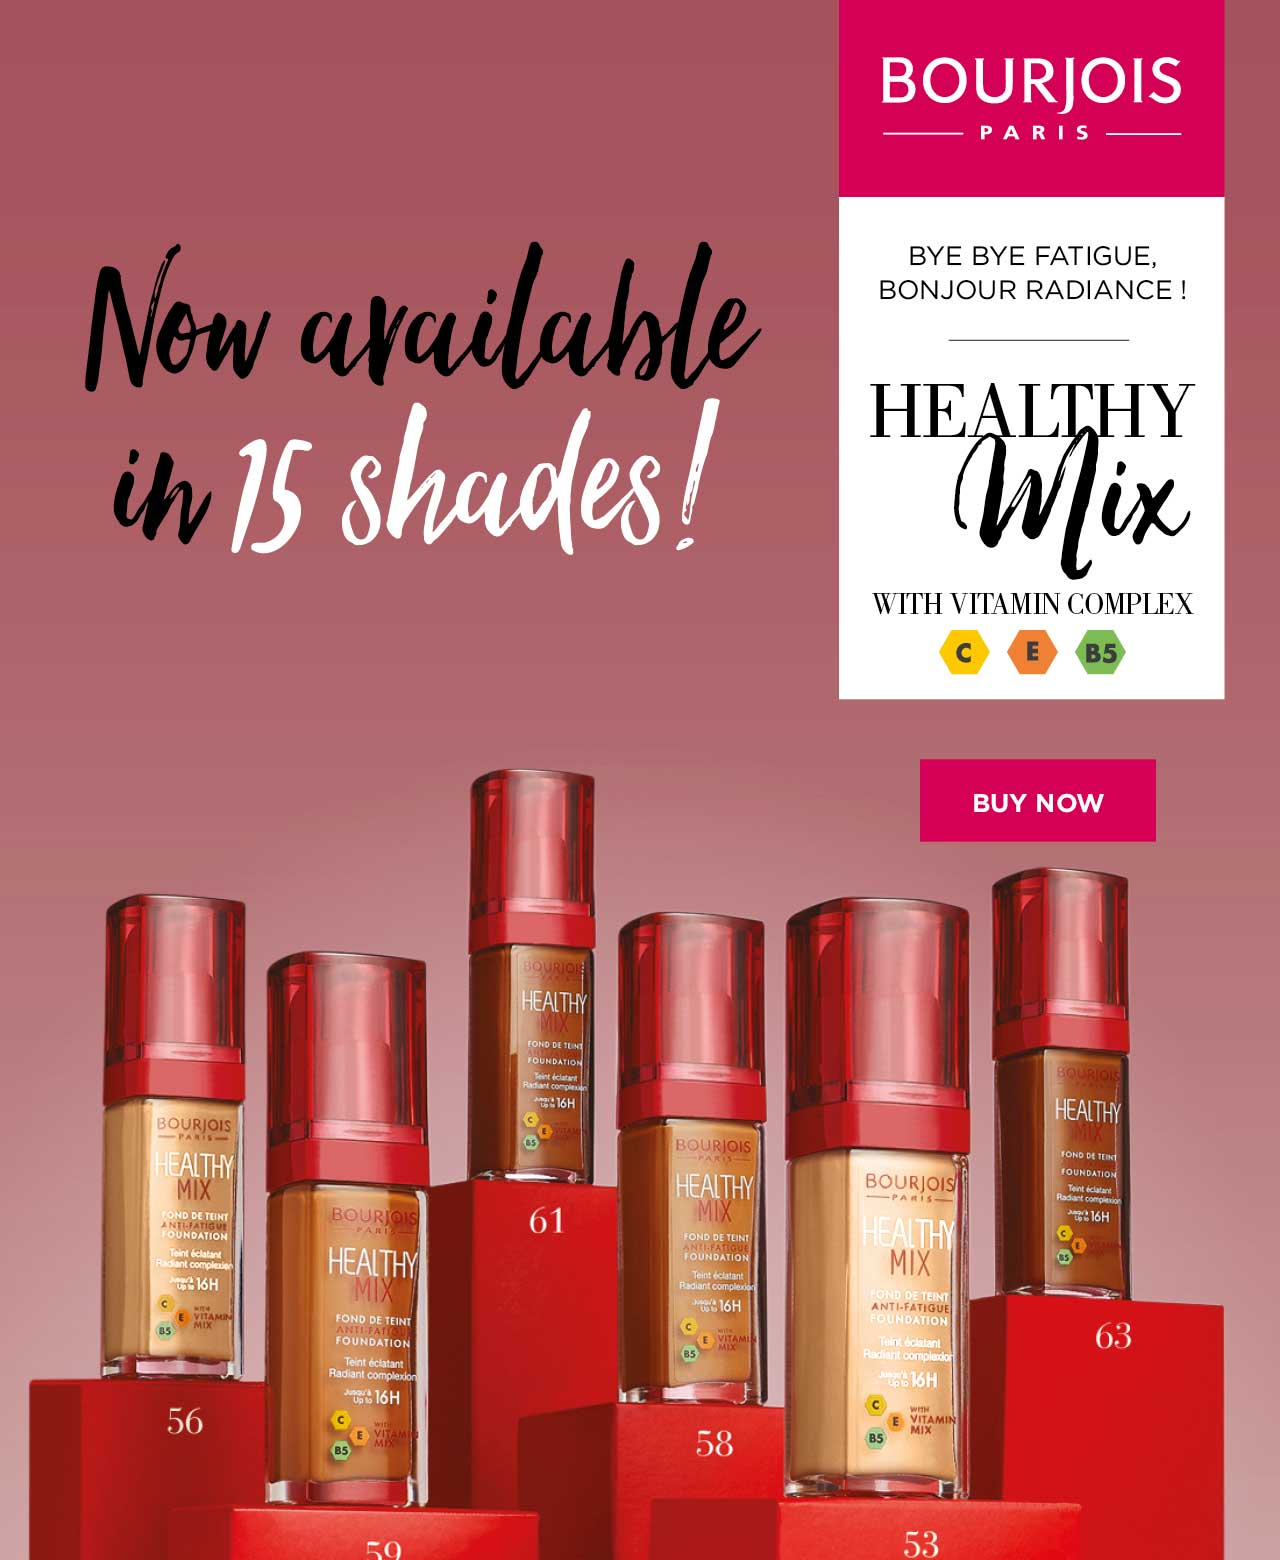 Bourjois Healthy Mix Buy Now